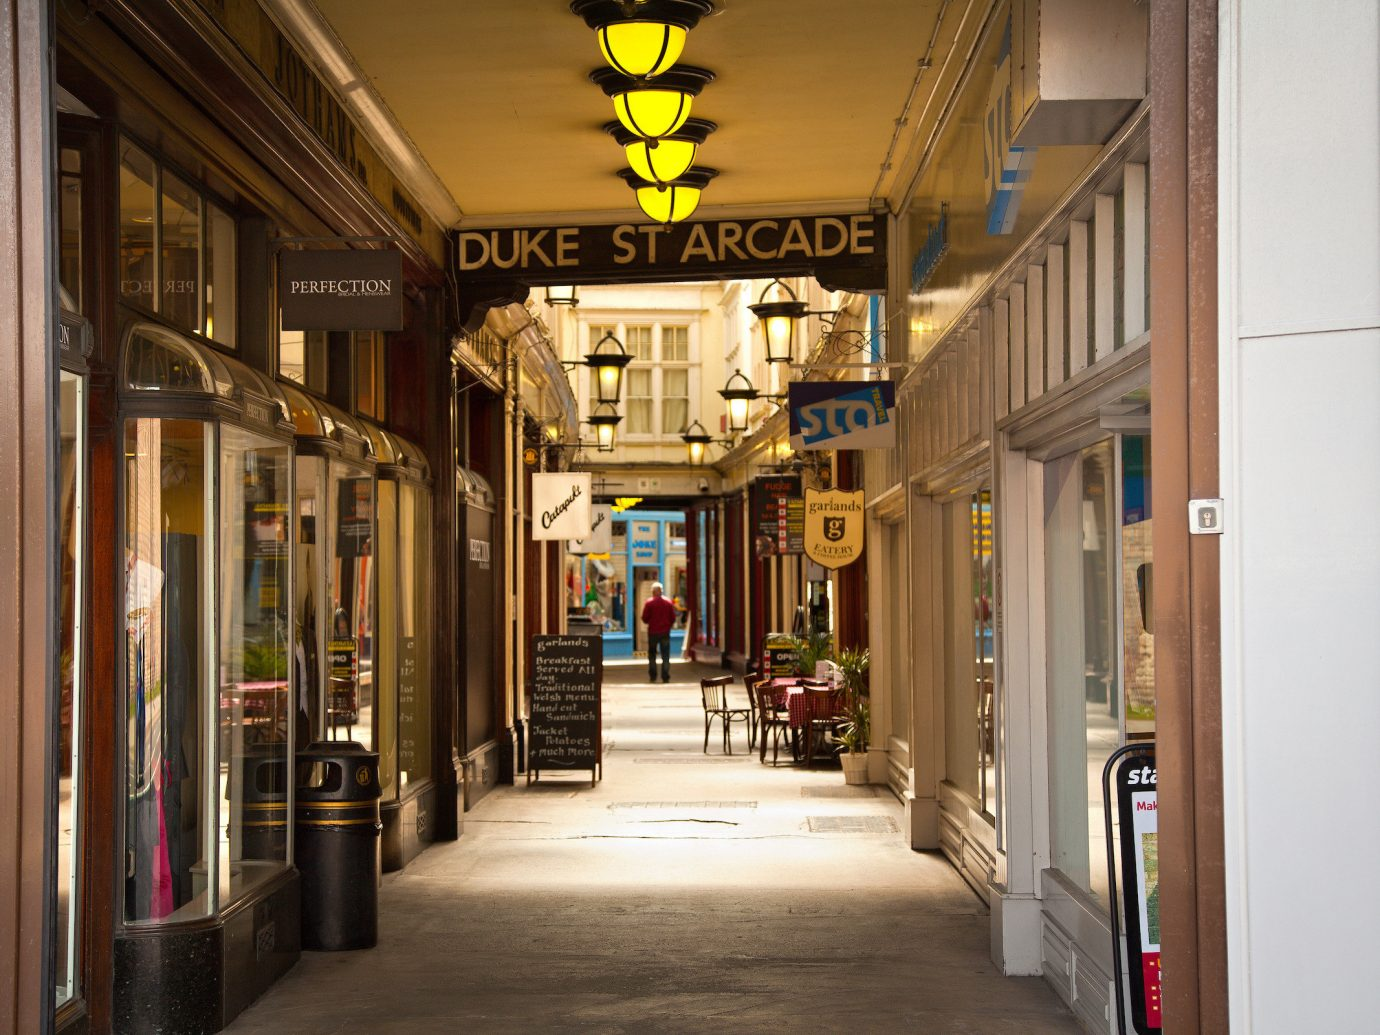 Jetsetter Guides building road urban area neighbourhood street Architecture store arcade hall interior design alley way sidewalk